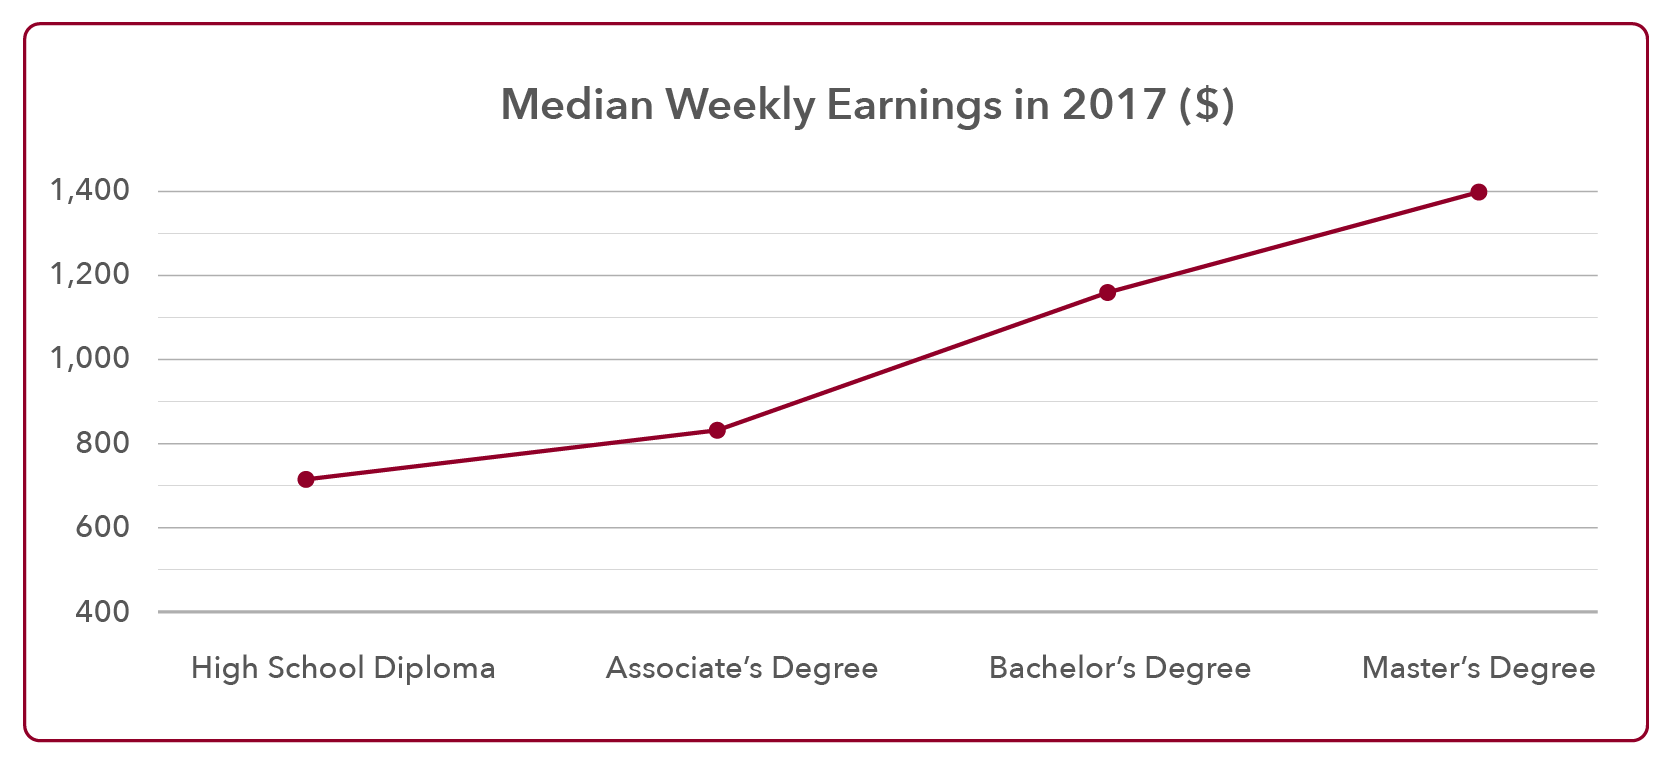 Median Weekly Earnings and Education 2017